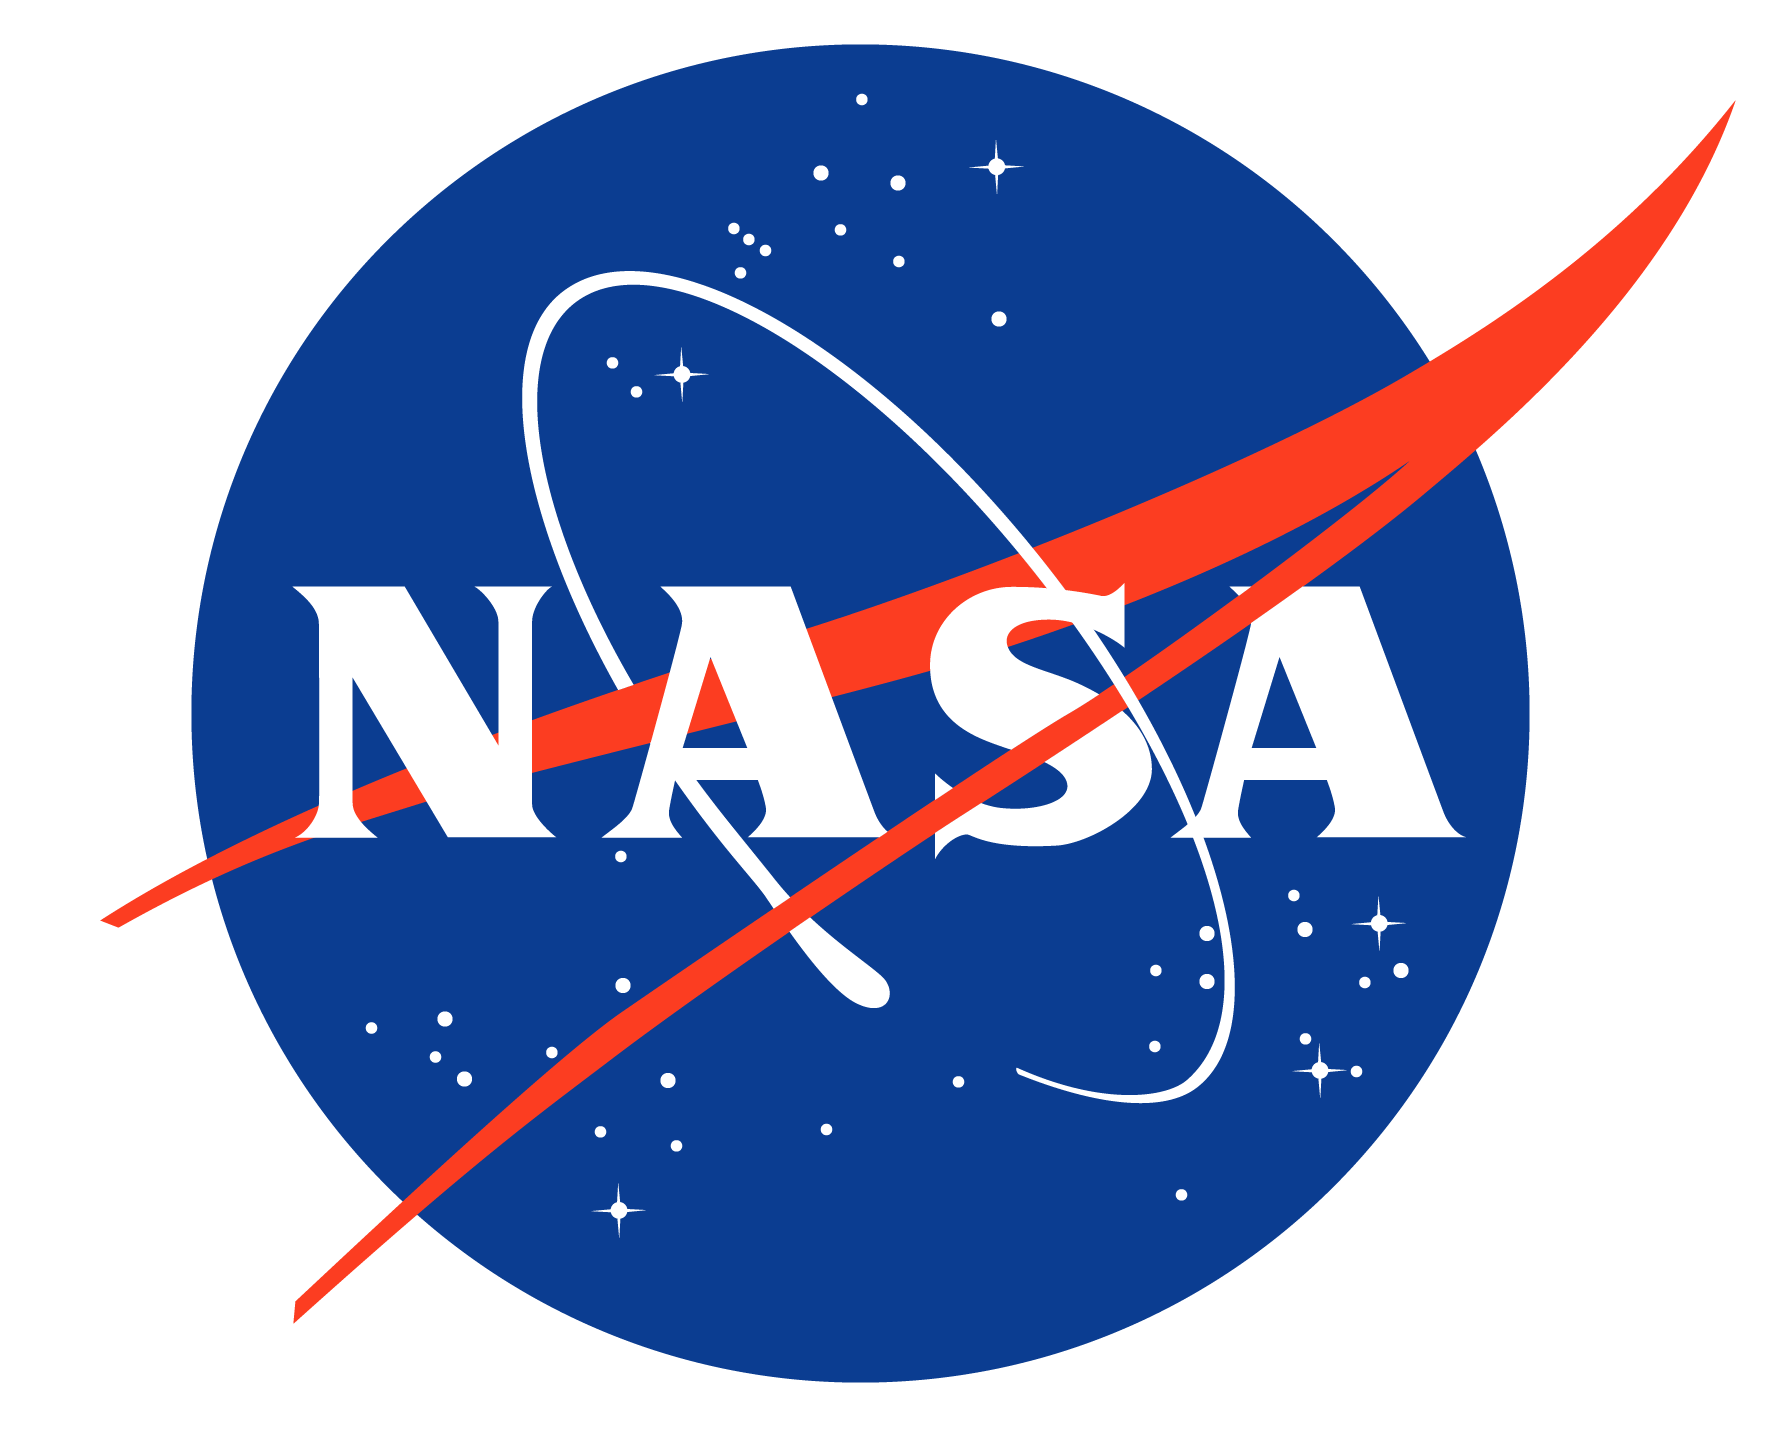 NASA logo seal